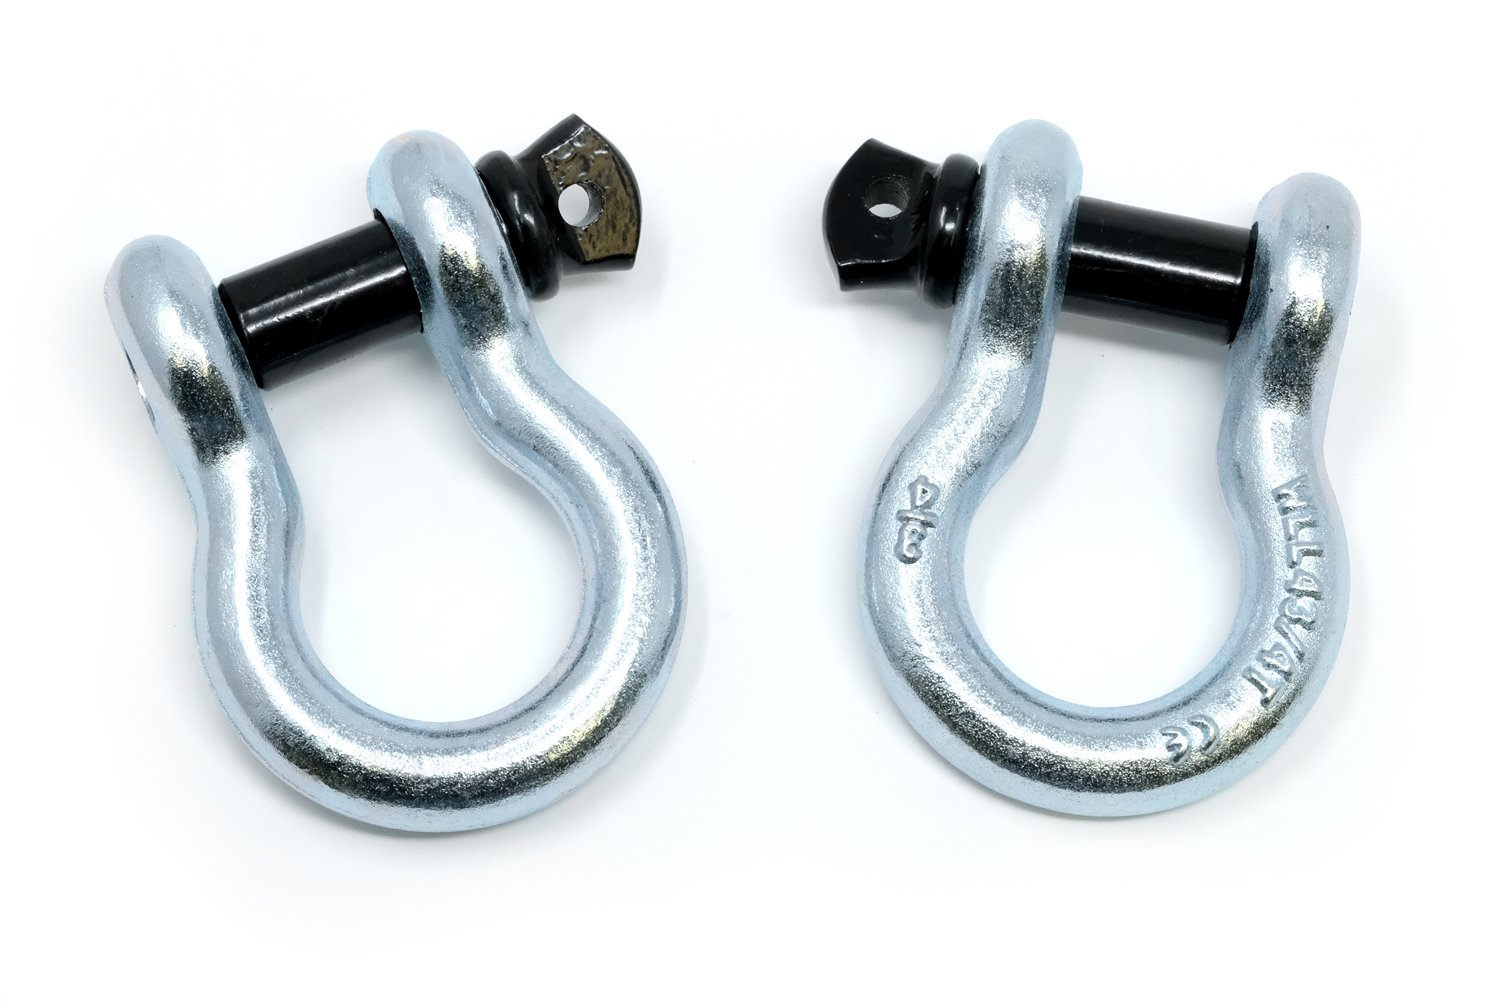 2 pcs LFPartS D-Ring Shackles Set 3//4 Powder Coat Heavy Duty for Vehicle Recovery Towing Jeeps Boats Trucks Atvs 3//4 Shackles Silver